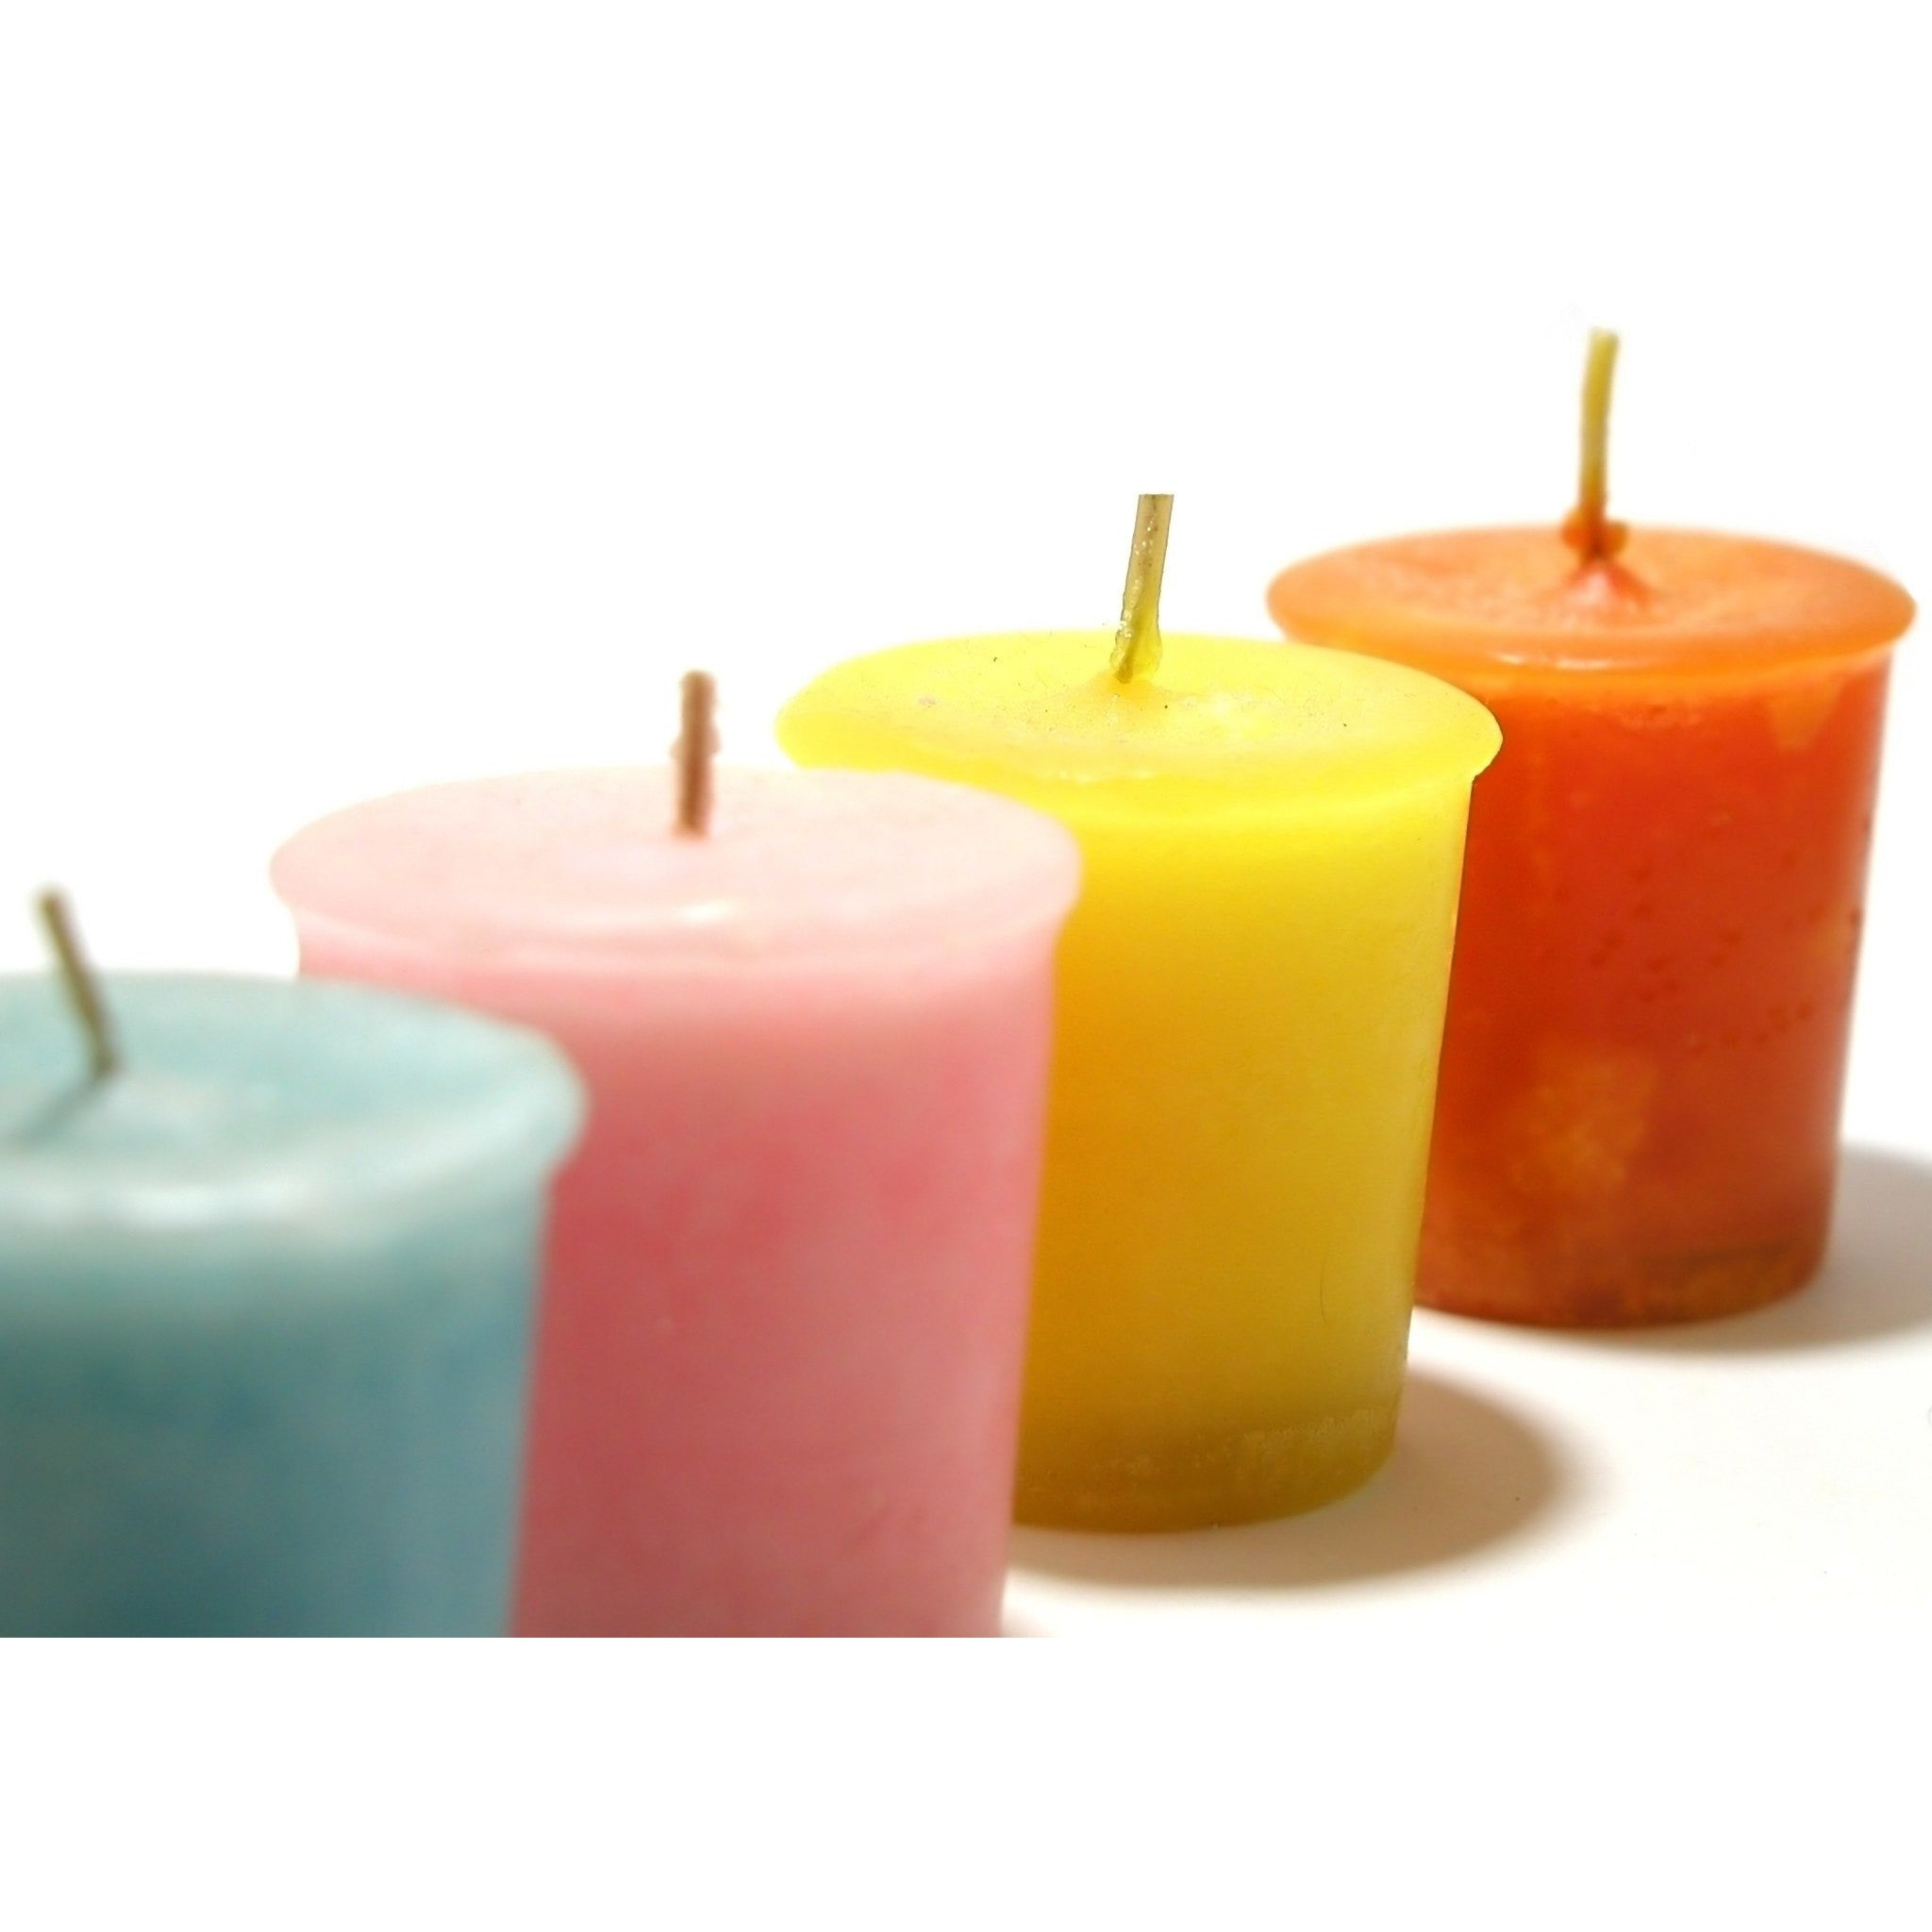 Harvest-Spice Natural Hand Poured Soy Candles - Votive-Single - Bella-Mia Naturals All Natural Soy Candles & Lip Balms - 7